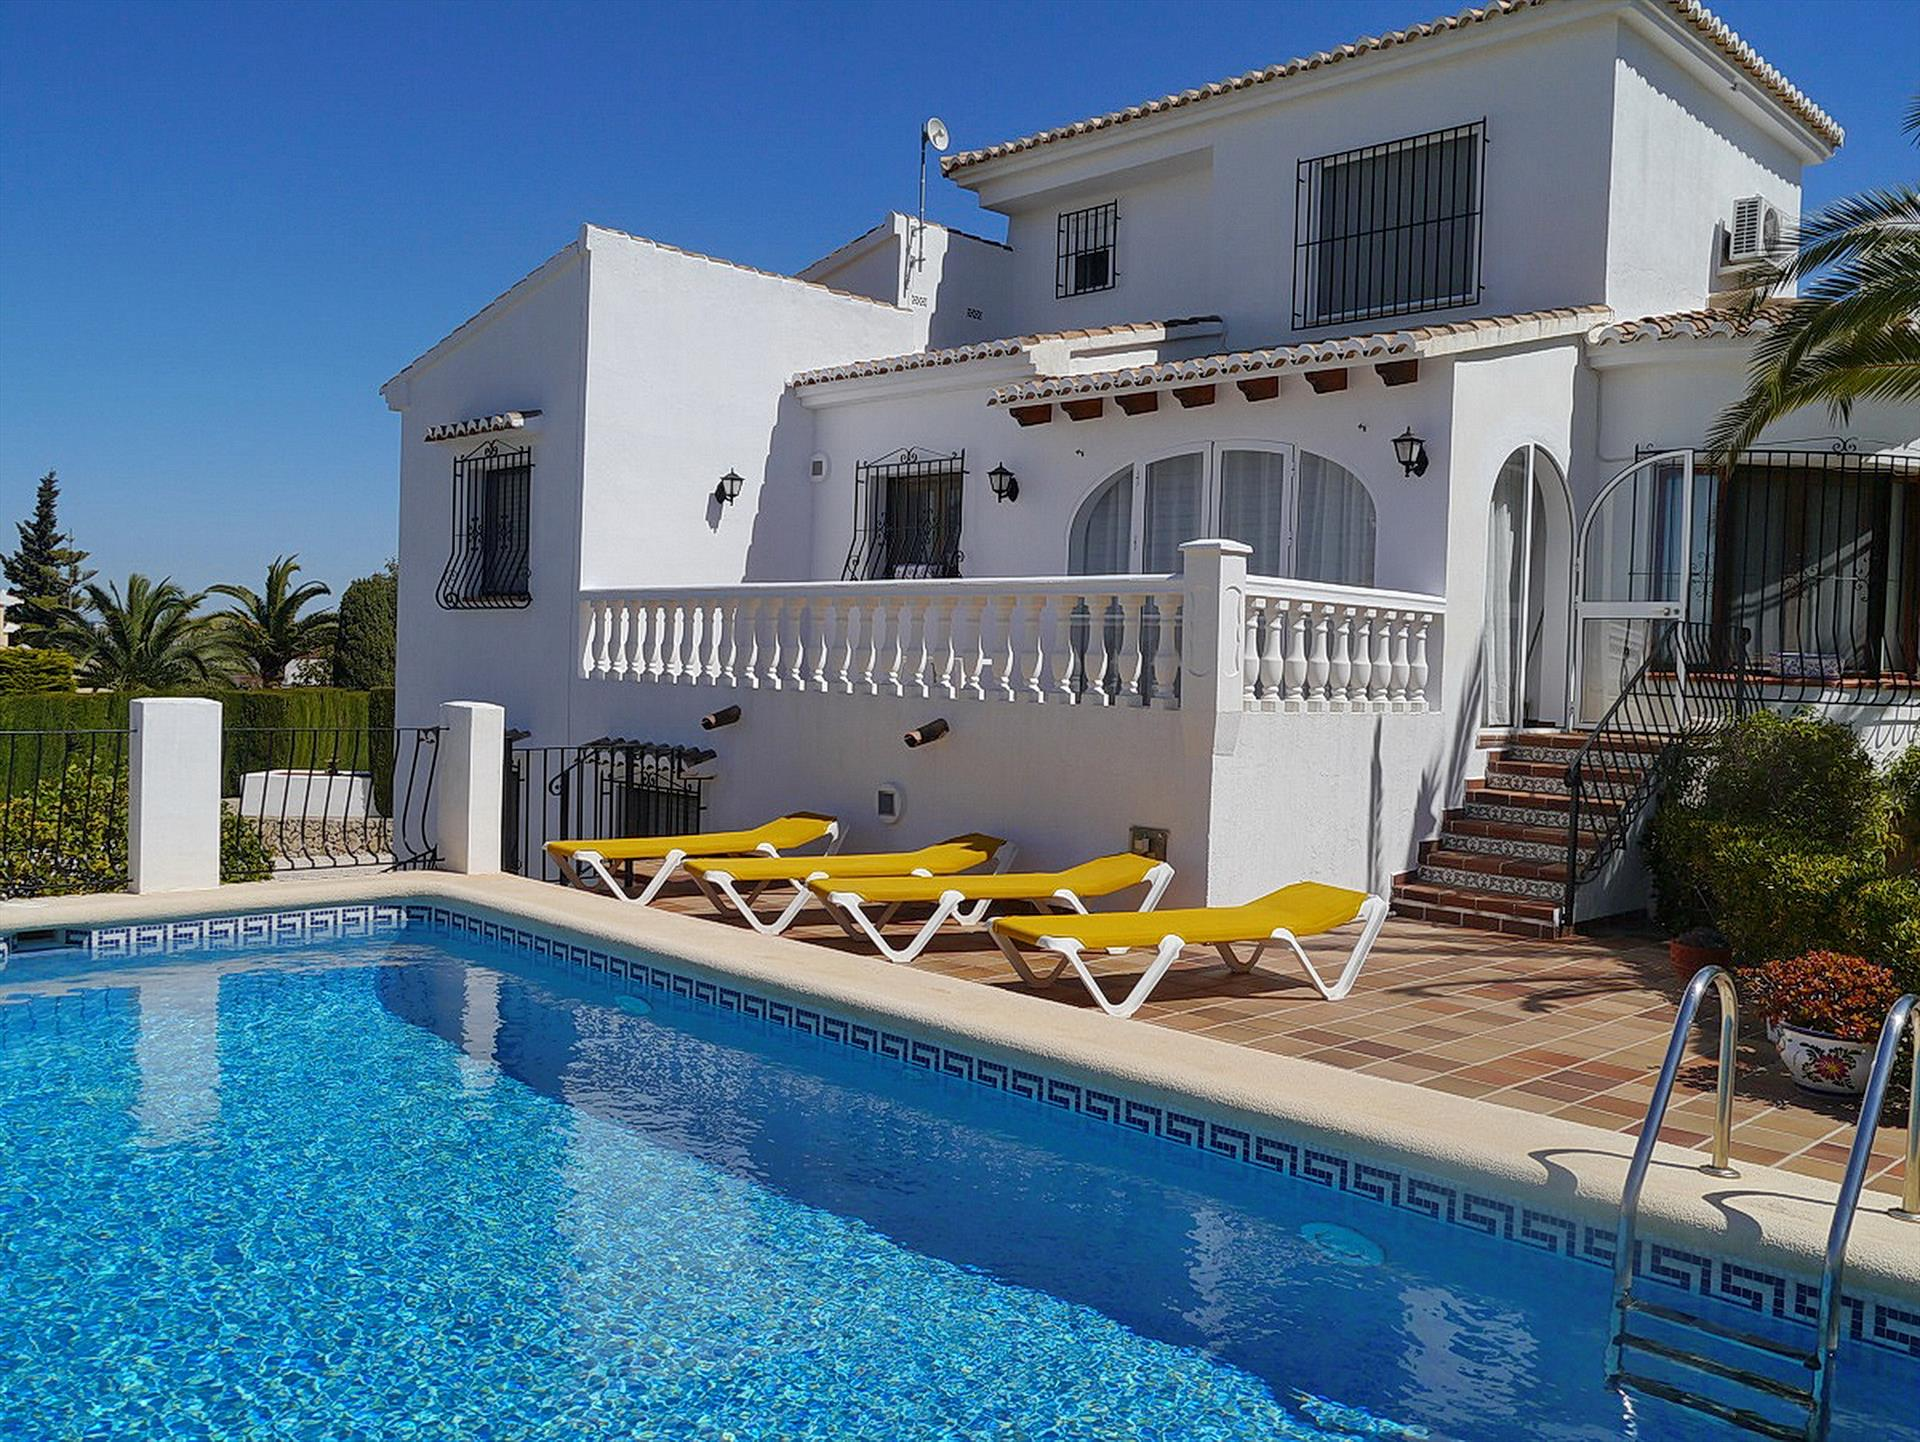 Sophie 4, Modern and cheerful villa in Benitachell, on the Costa Blanca, Spain  with private pool for 4 persons.....